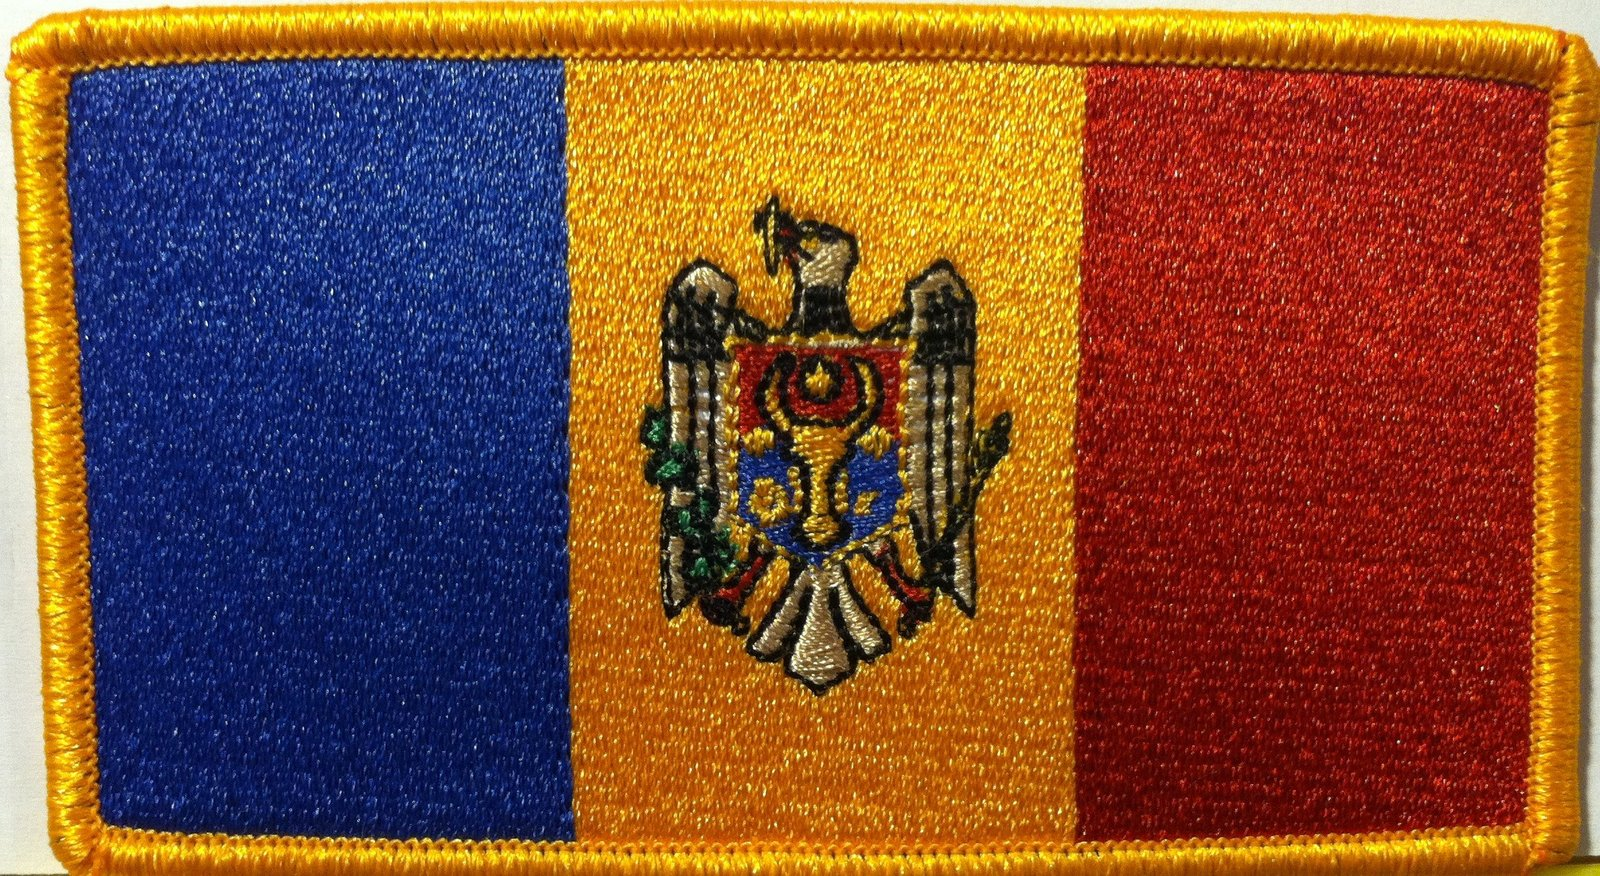 Primary image for Moldova Embroidery Iron-on Patch Emblem Gold Border